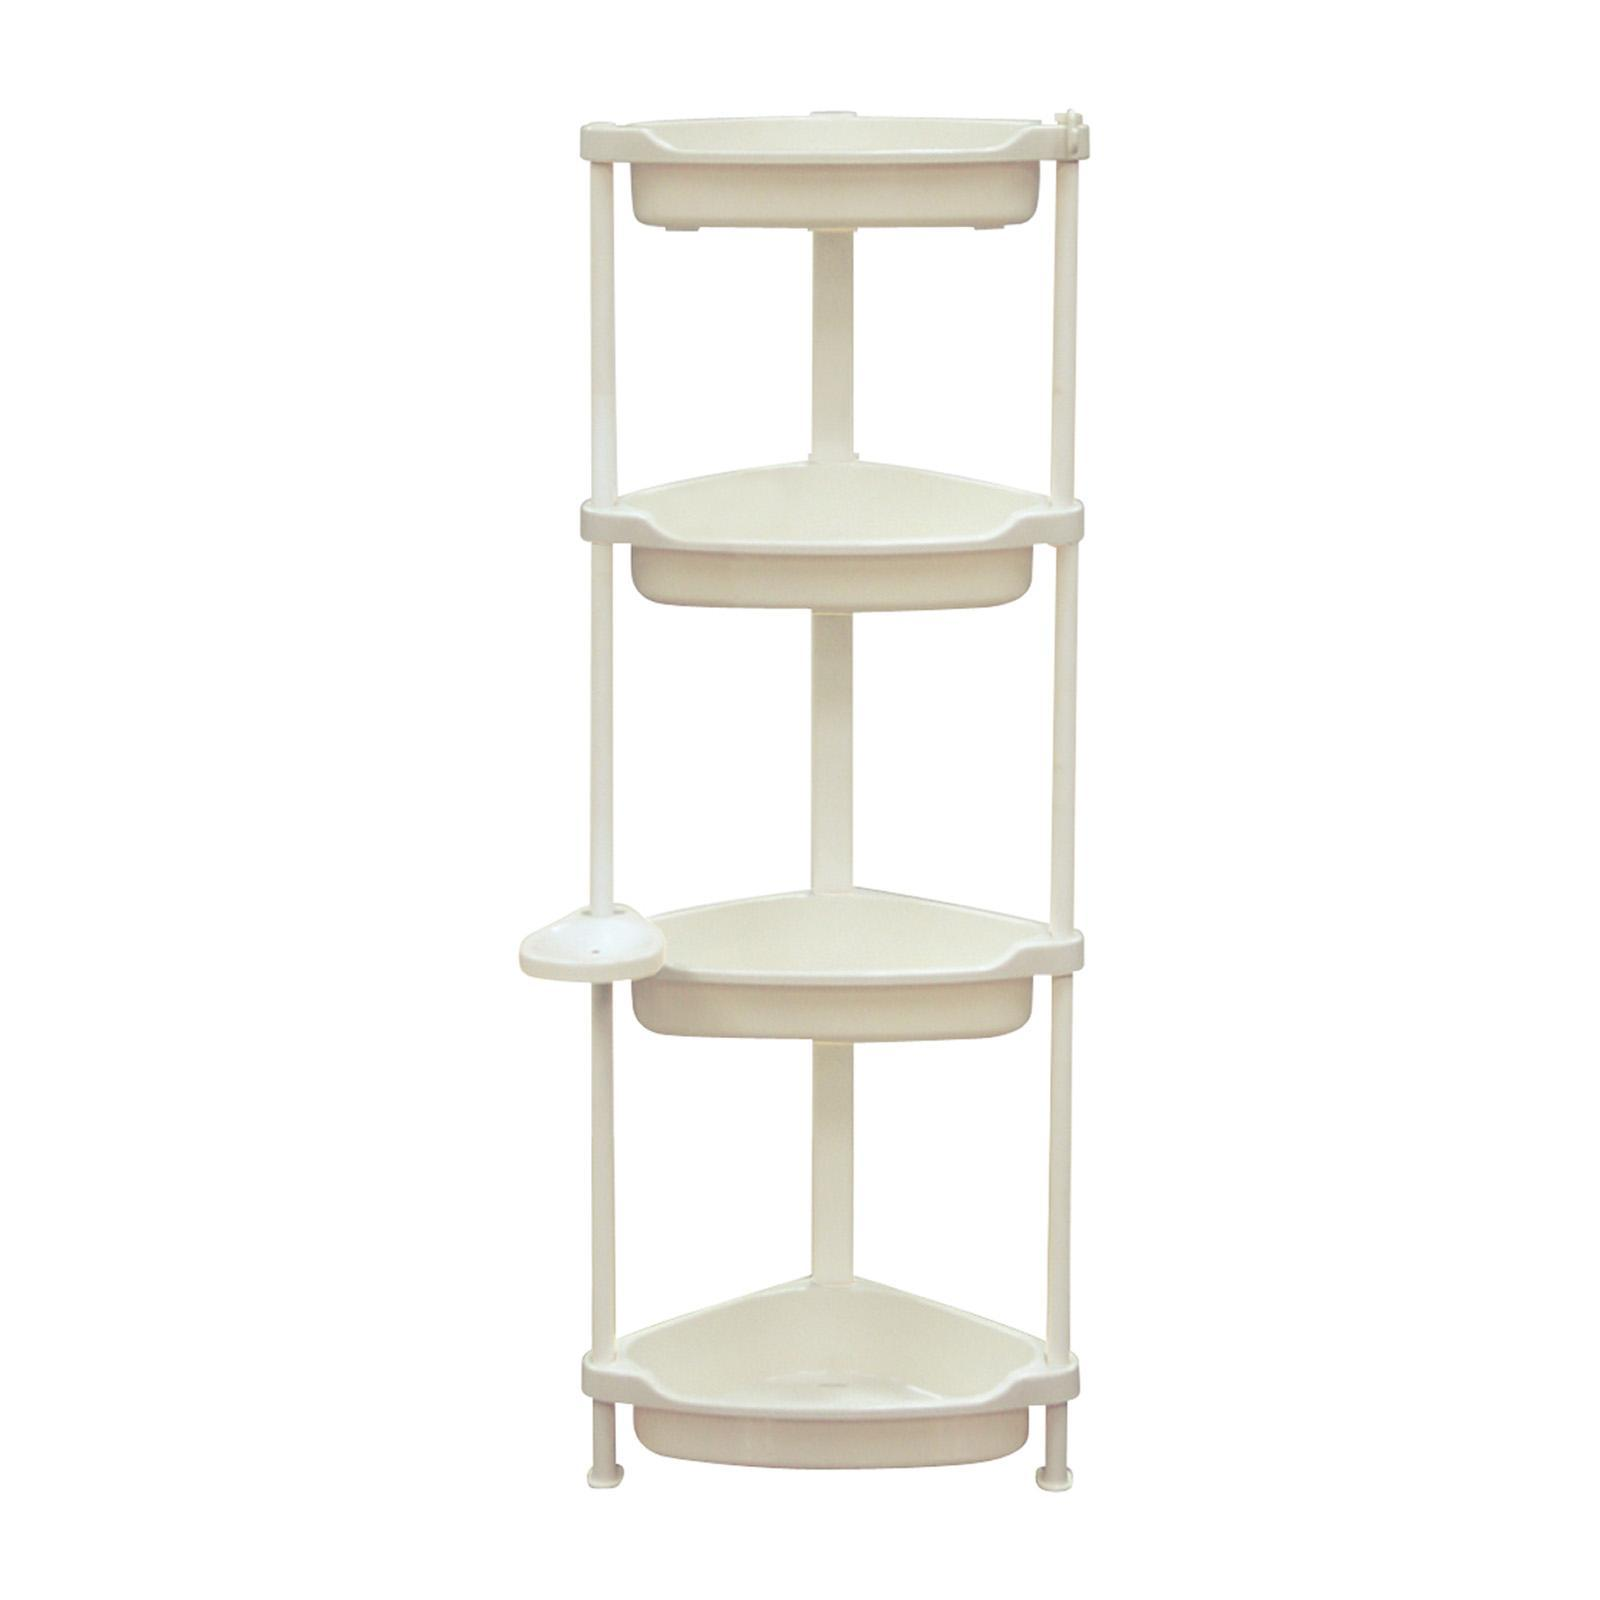 ALGO Corner Rack 4 Tier